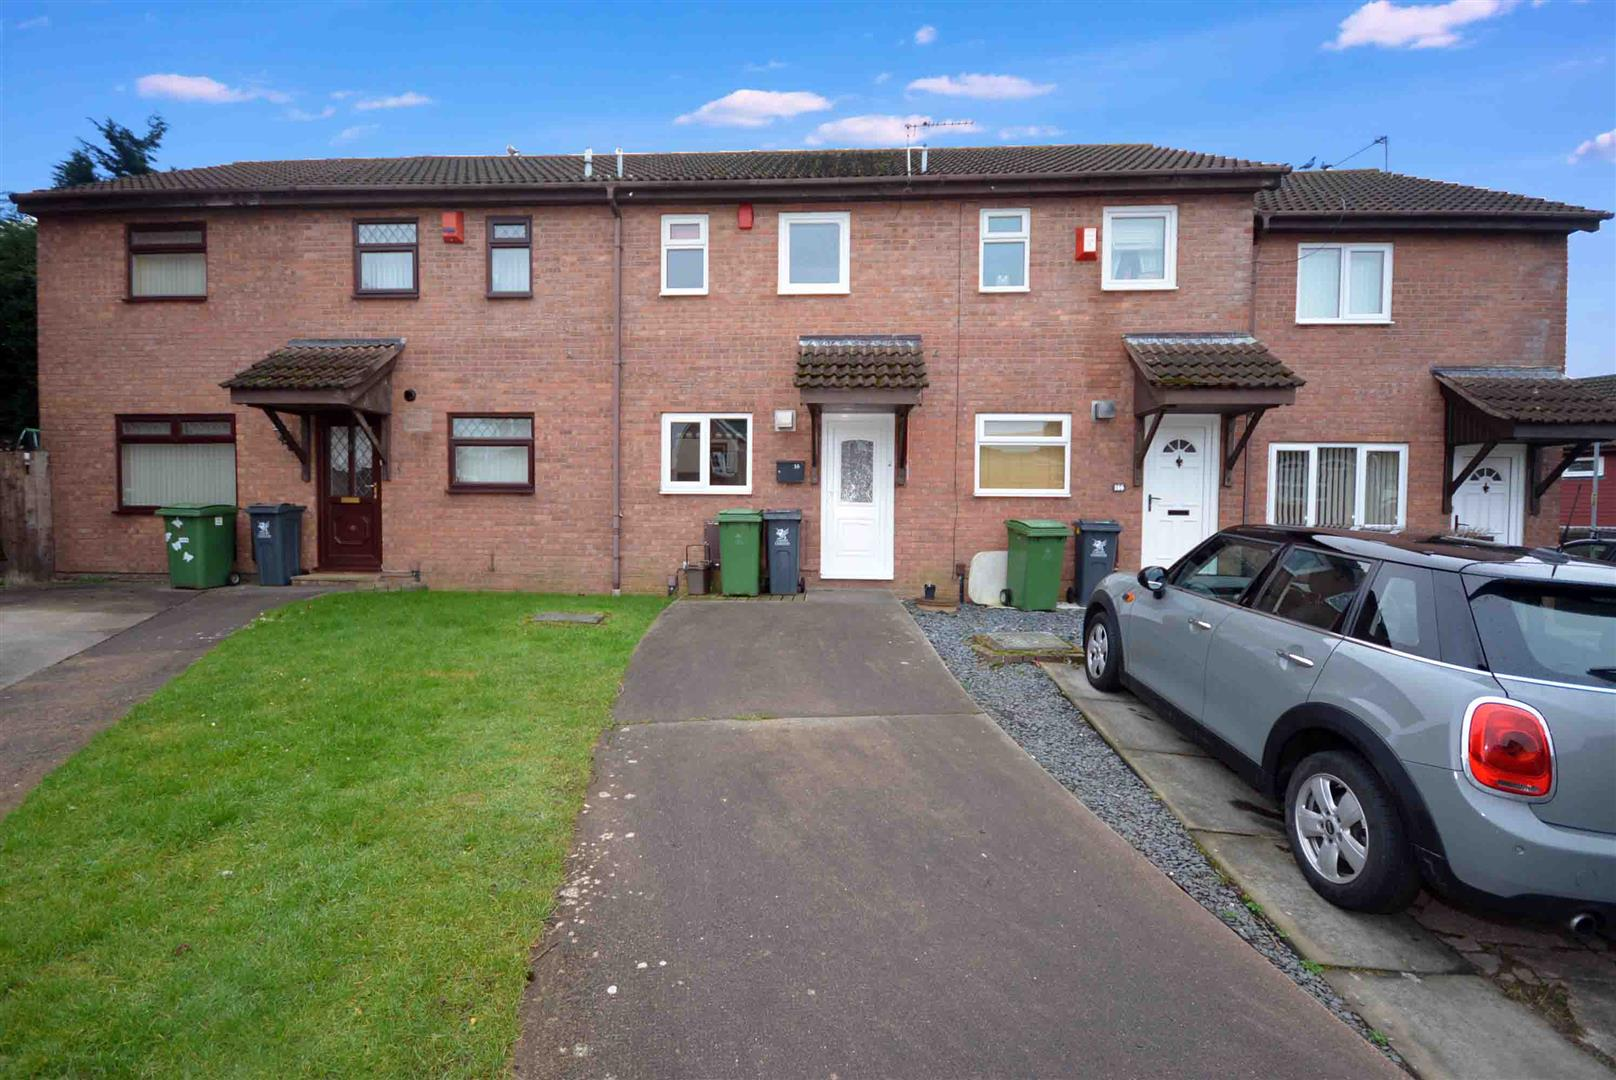 2 bed terraced house for sale in Bryn Heulog, Cardiff, CF23